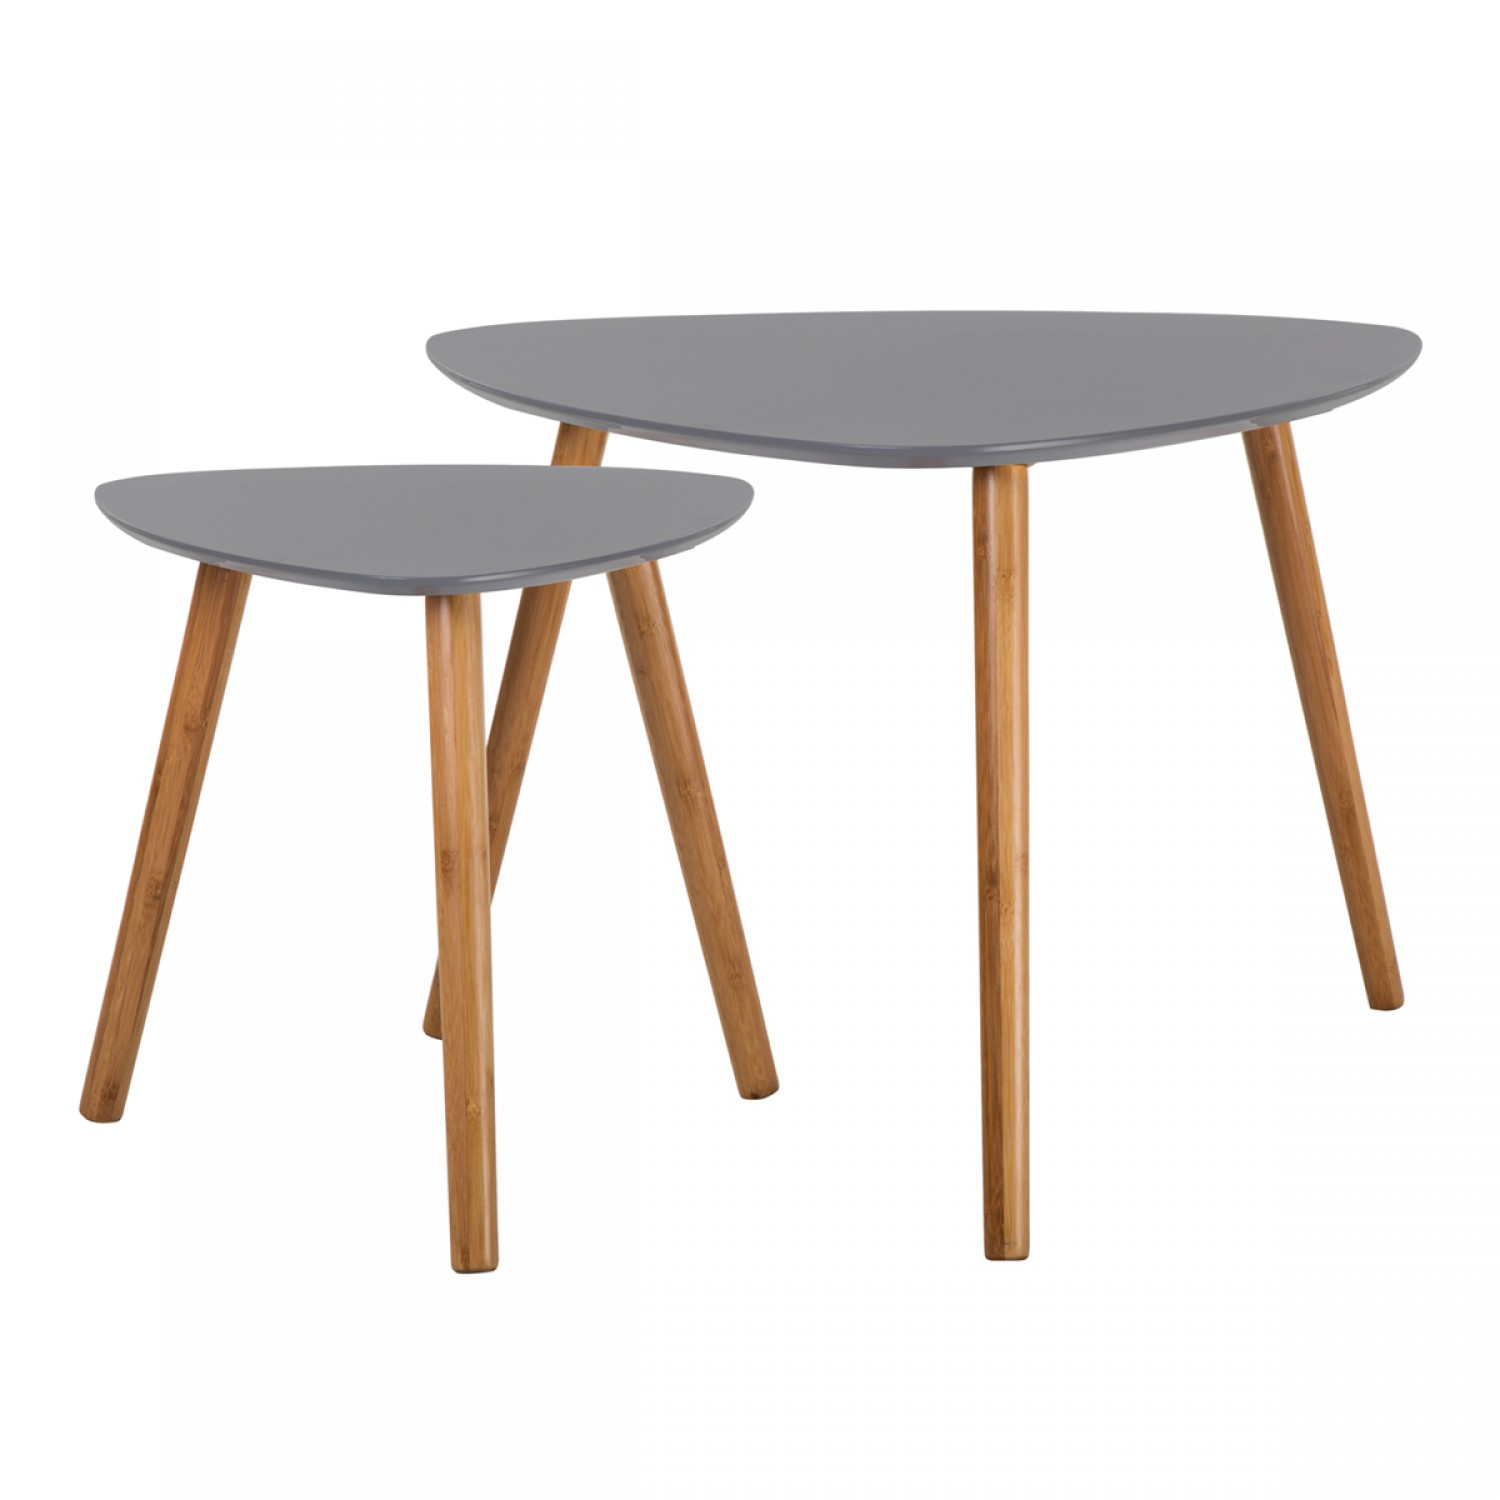 L gant table bistrot ikea table de cuisine id es for Ikea table 9 99